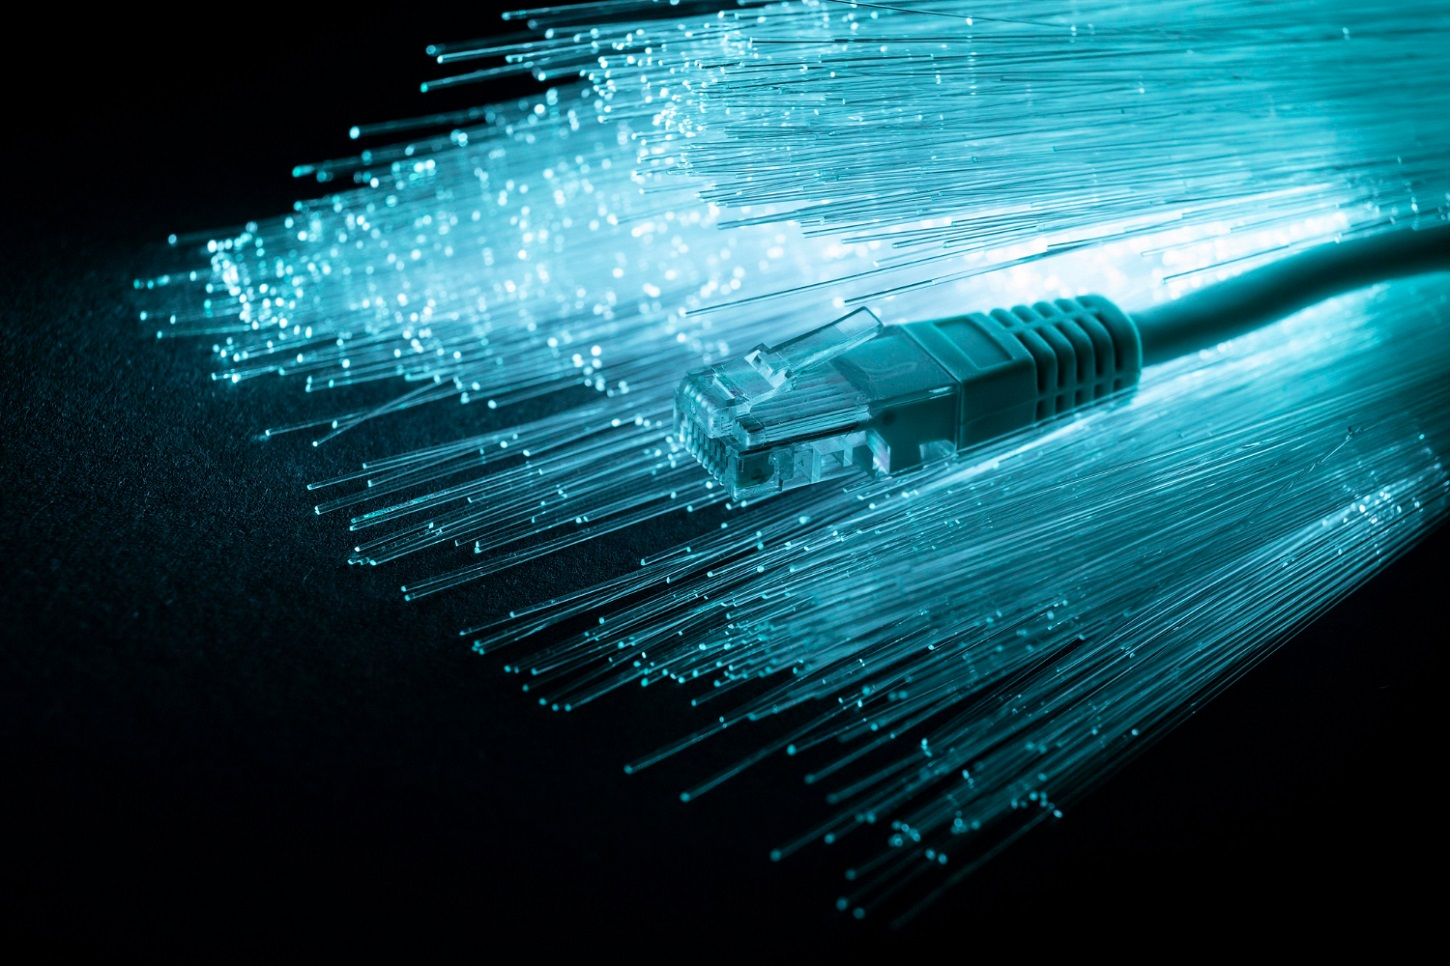 Blue fiber optic cables with an ethernet cable